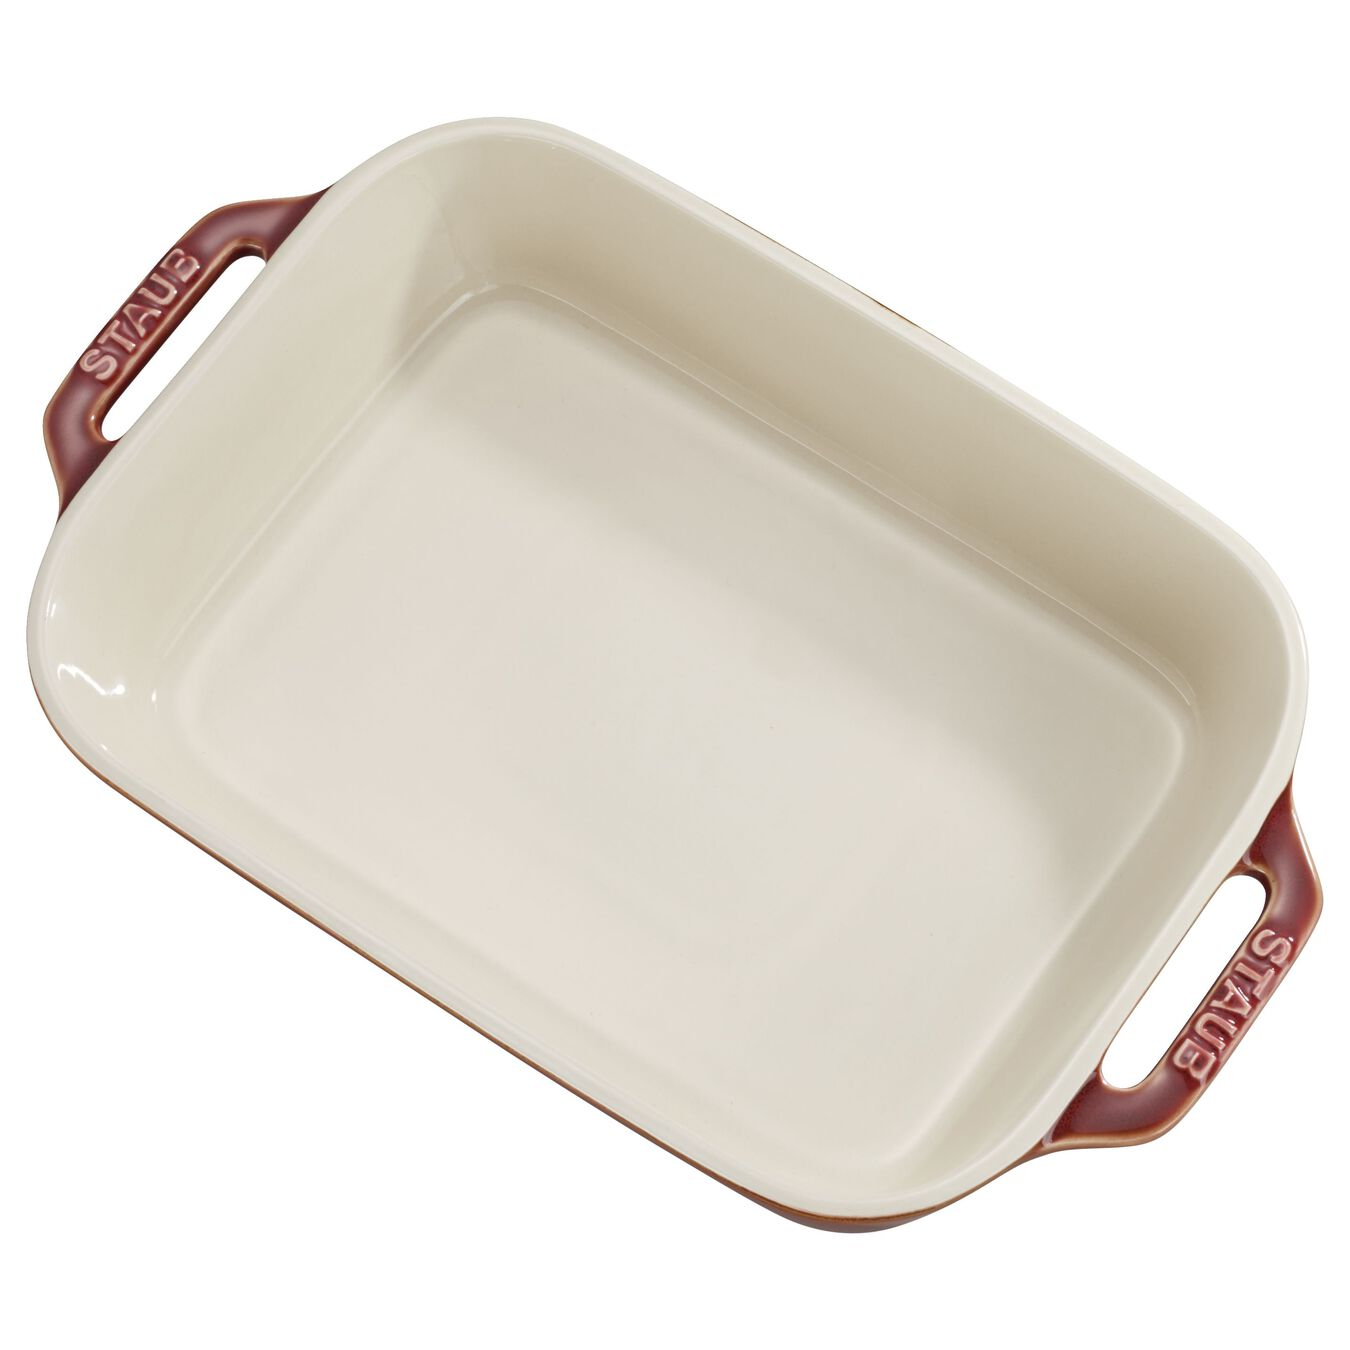 2 Piece square Bakeware set, Red,,large 1